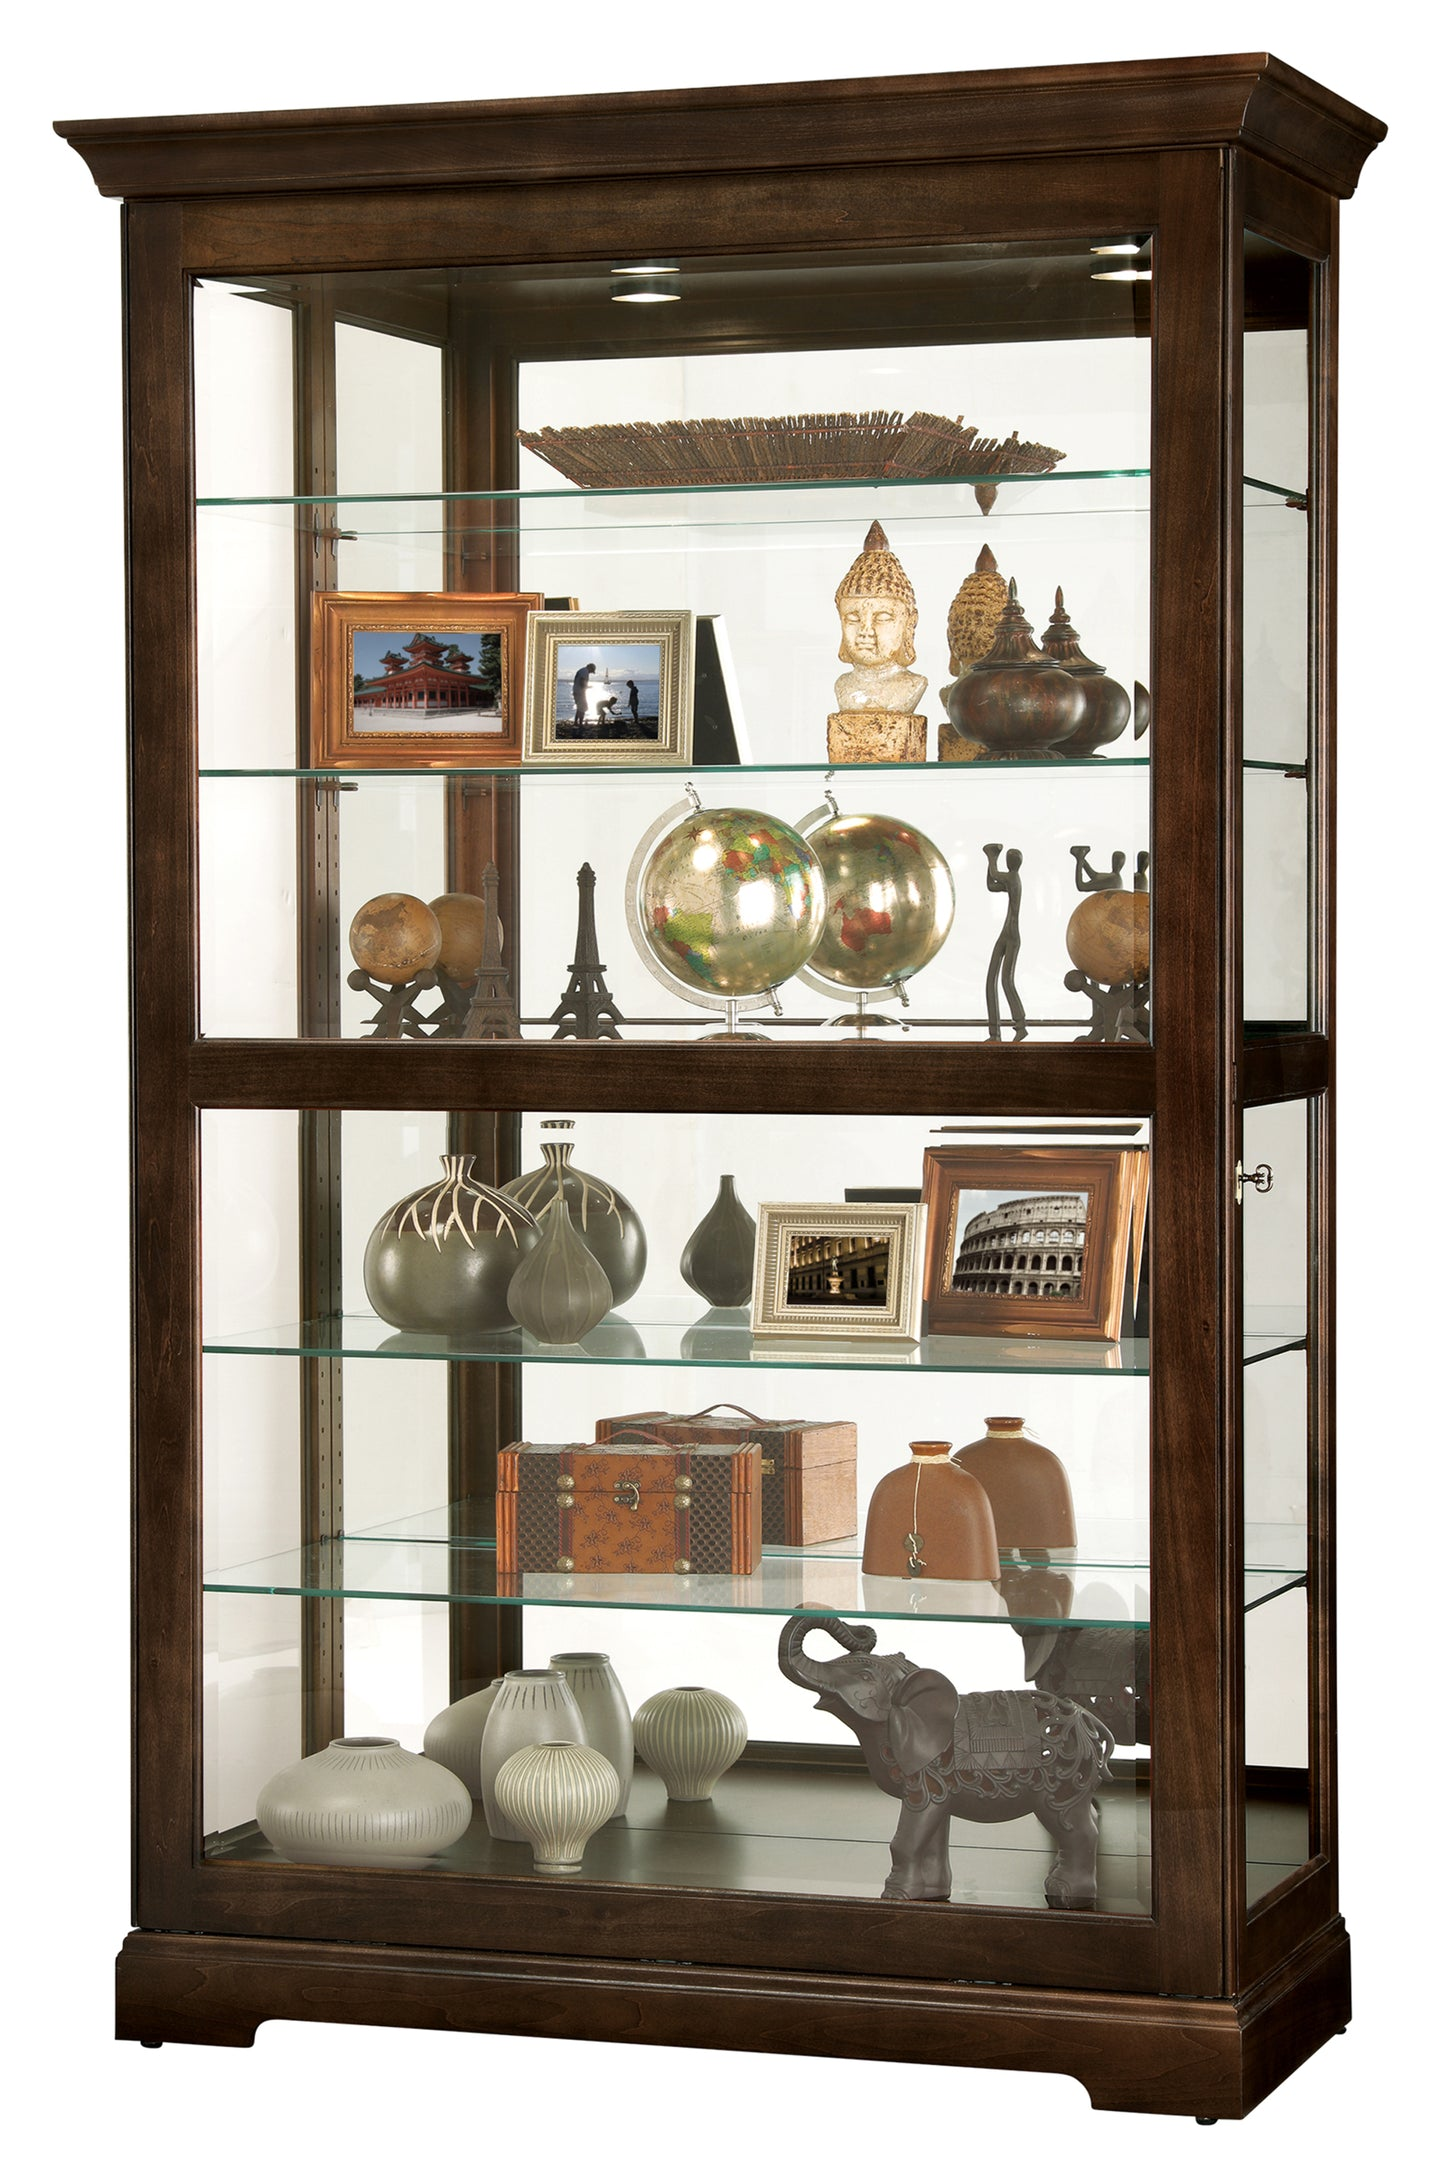 Howard Miller Kane III Curio Cabinet 680626 - Curios And More